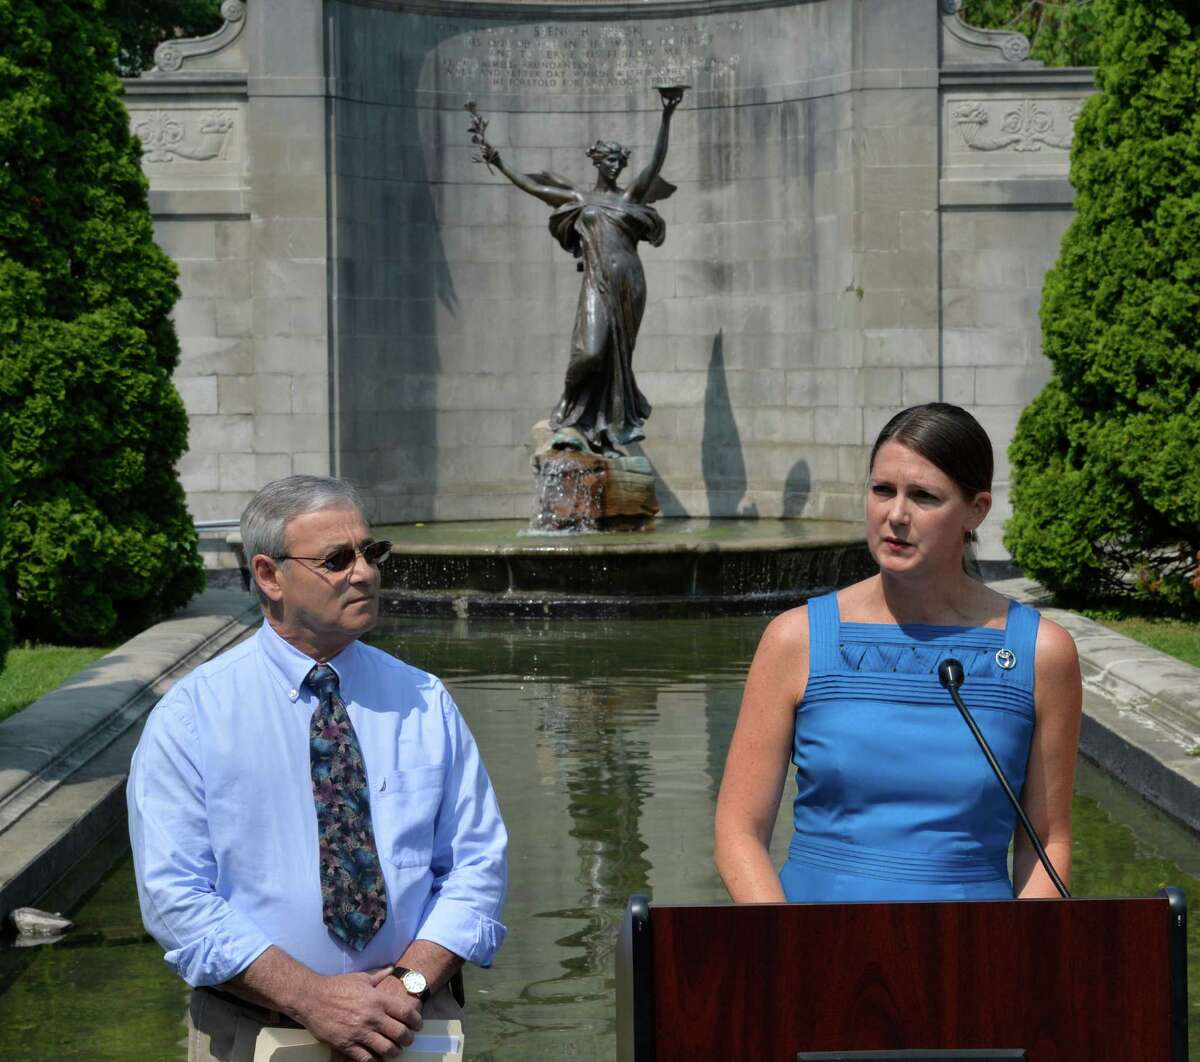 Samantha Mosshart, executive director of the Saratoga Springs Preservation Foundation, right, announces the renovation plans for memorial built in honor of Spencer Trask, background, in Congress Park Friday morning July 25, 2014 in Saratoga Springs, N.Y. Joining Bosshart is Anthony